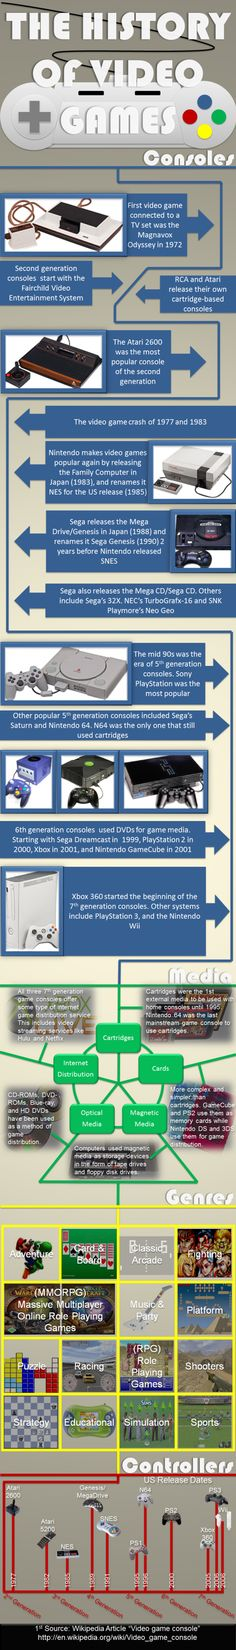 The History of Video Games. #Infographic